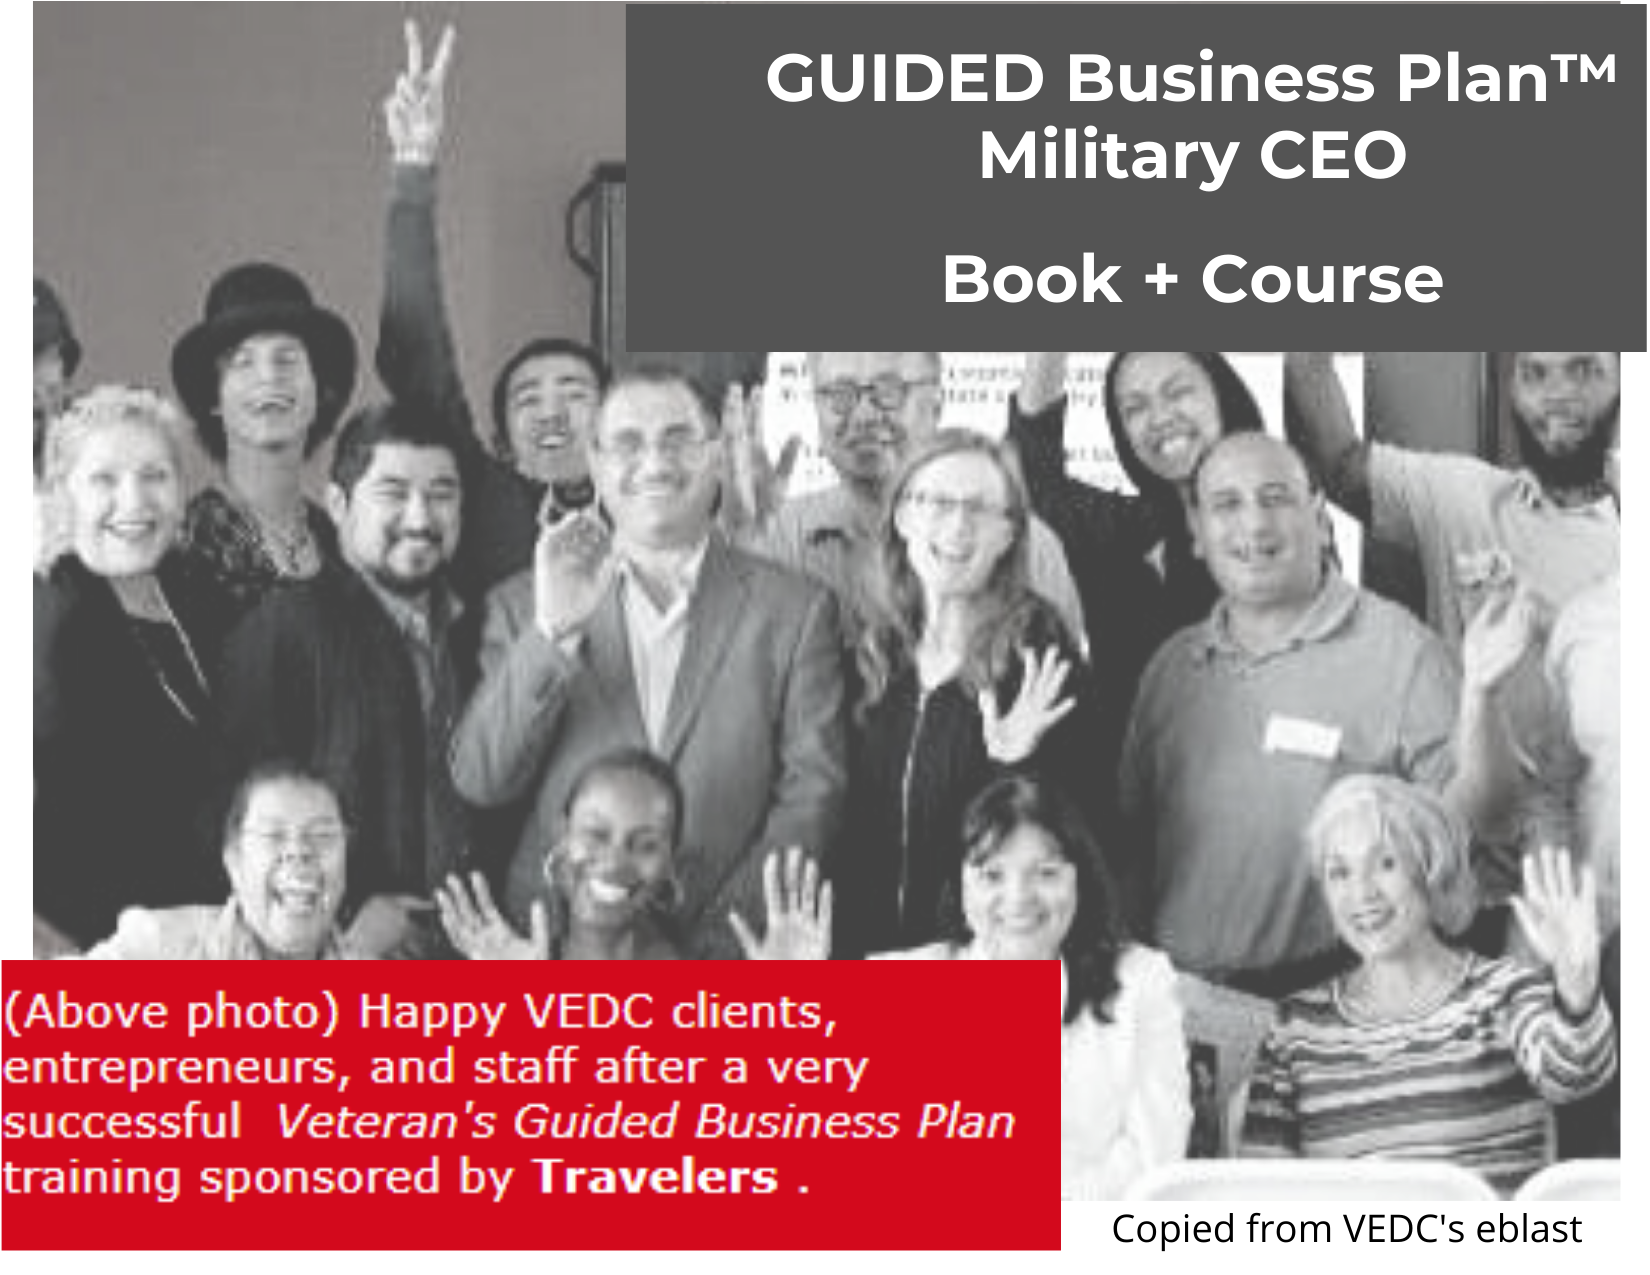 GUIDED Business Plan class for veterans and military spouses